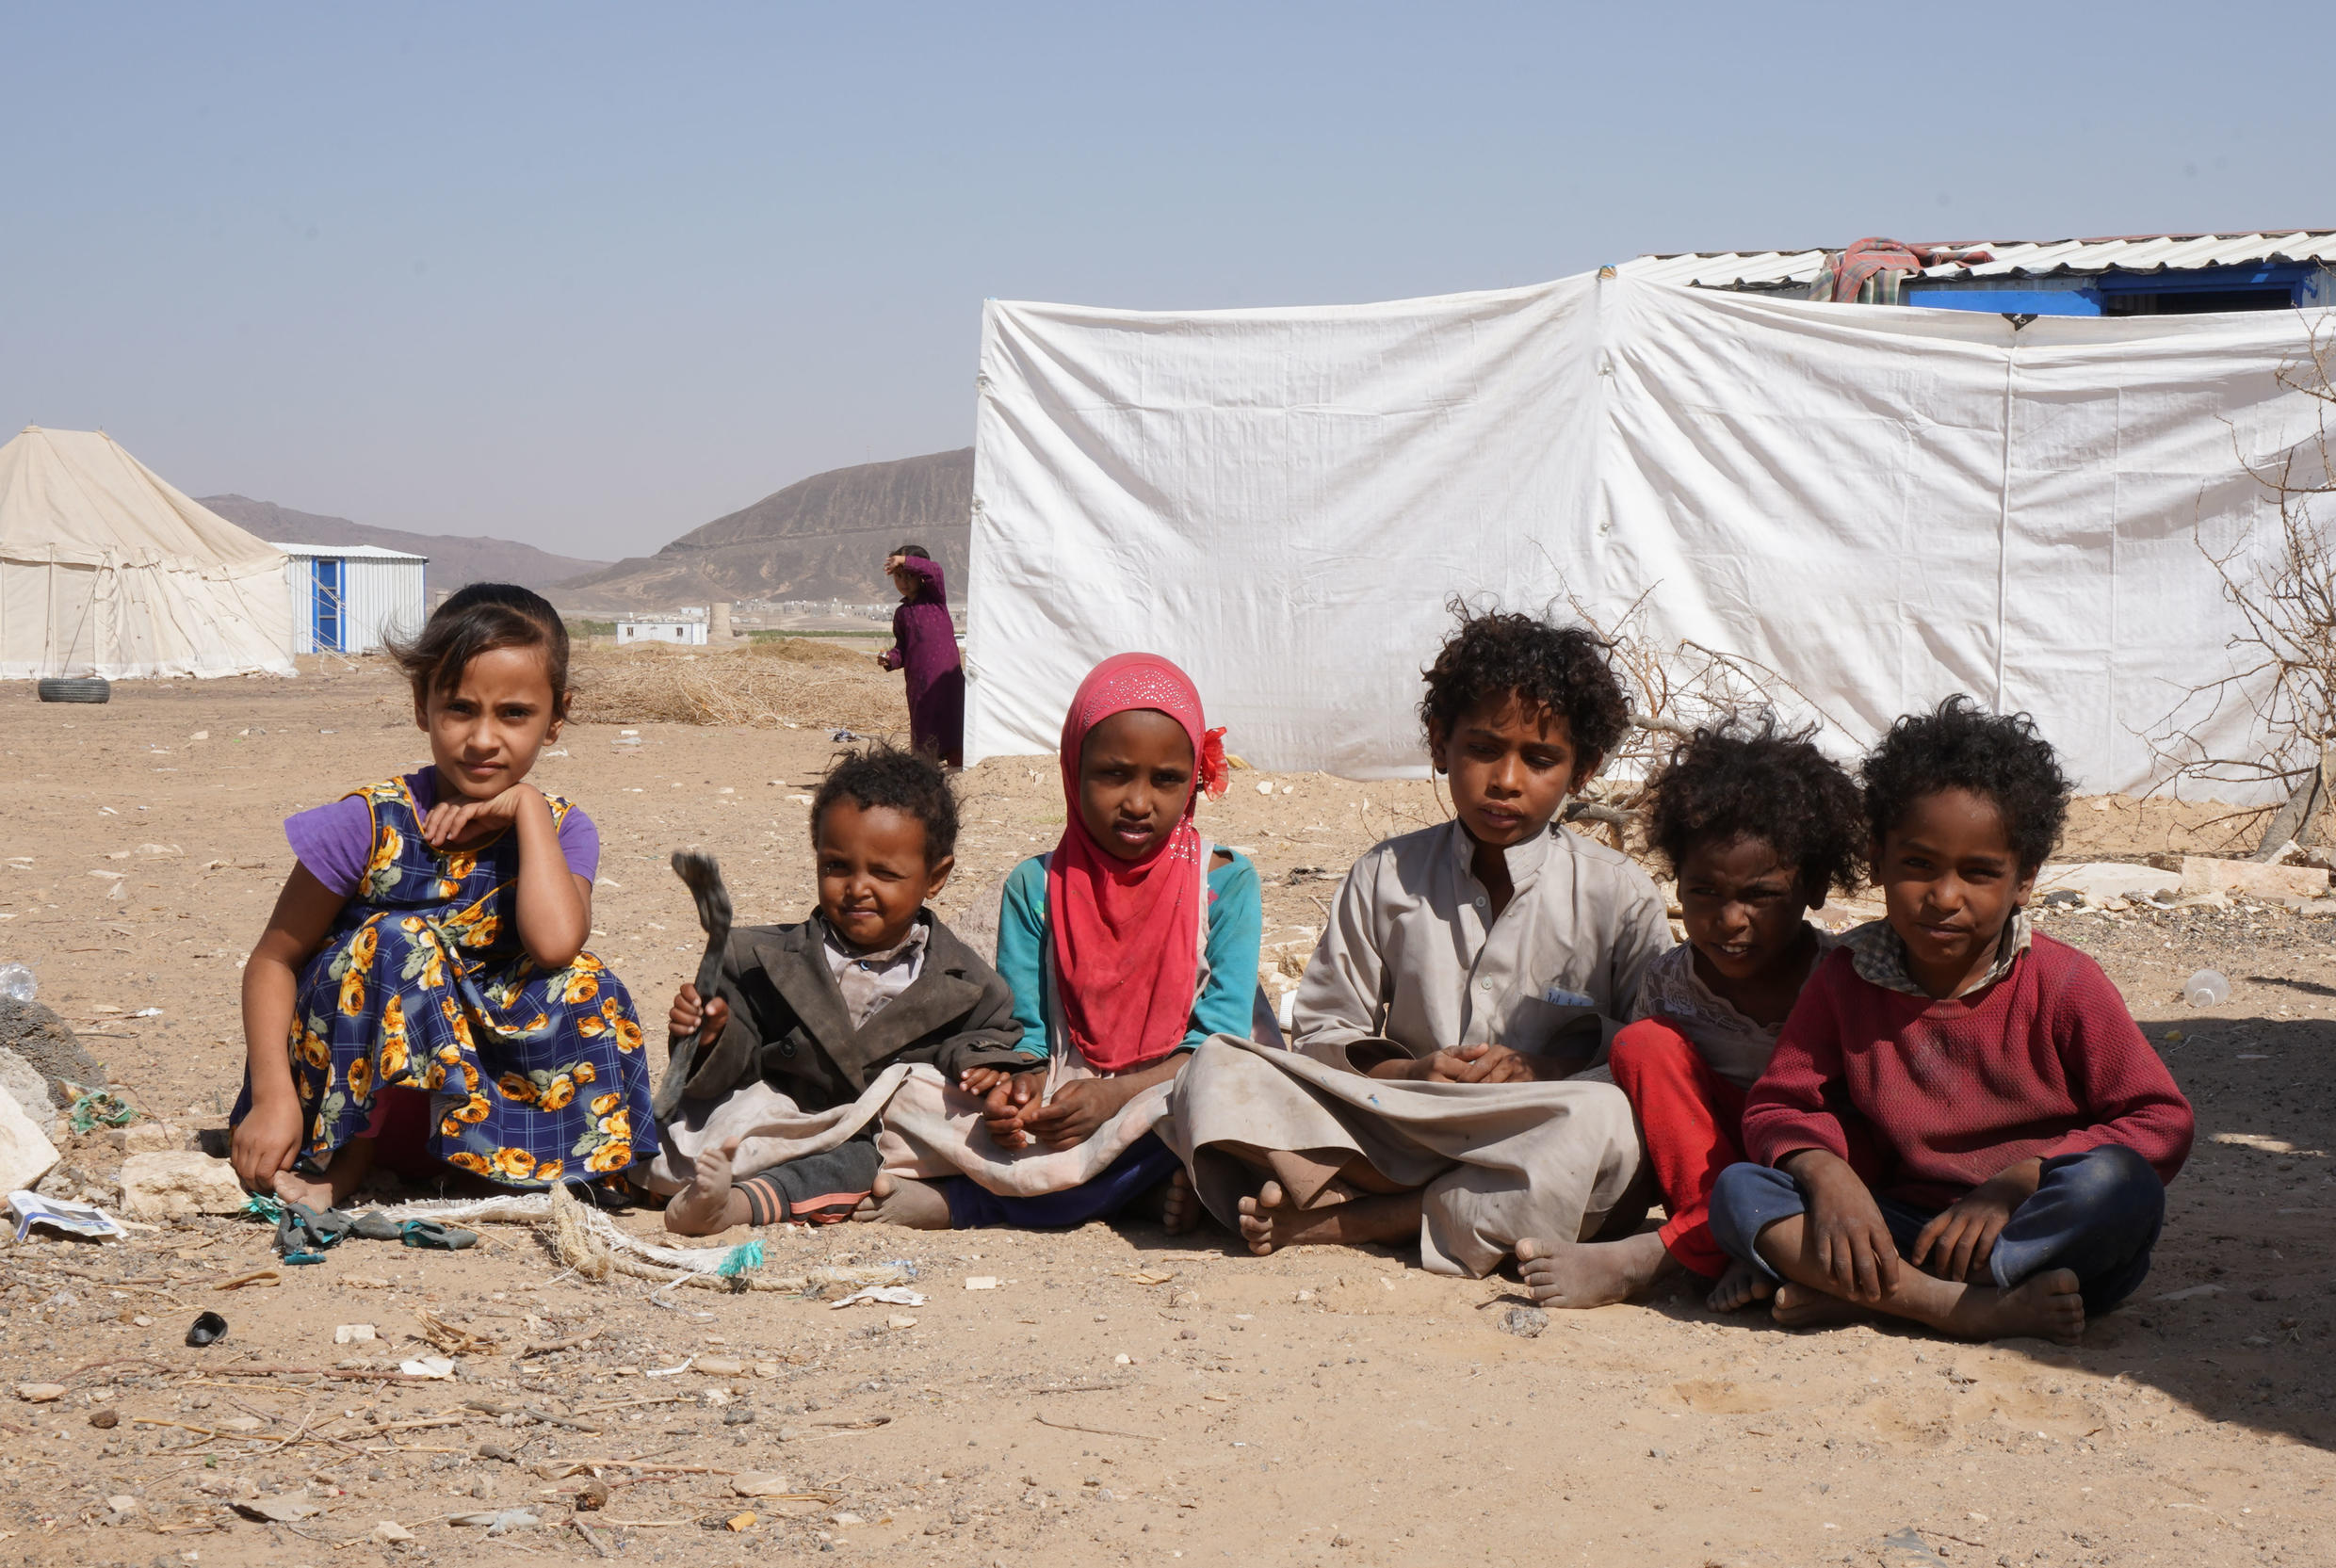 A tent in the Yemeni desert is not much of a home but as advancing Huthi rebels draw ever closer to the nearby city of Marib these children face being forced onto the road again with all of its attendant dangers